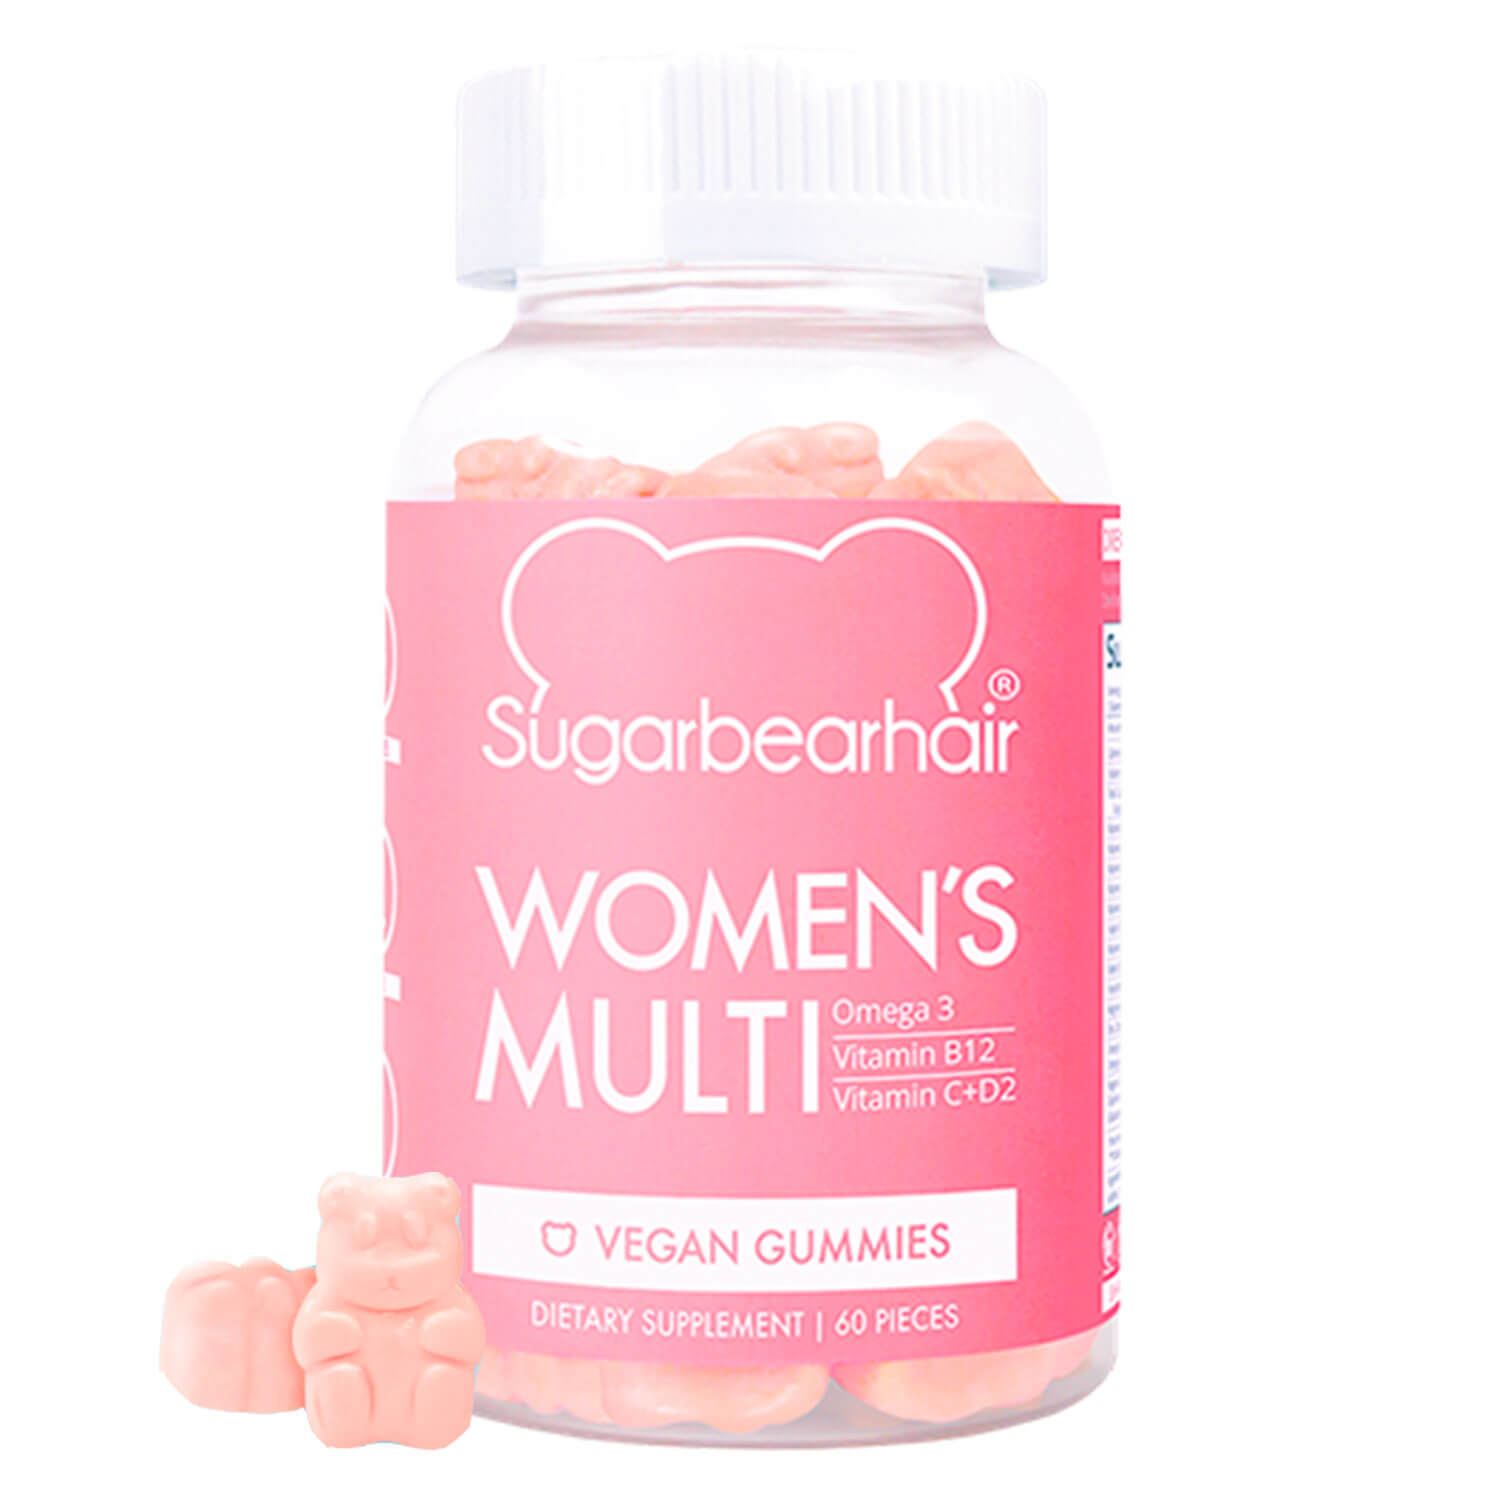 Sugarbearhair - Women's Multi